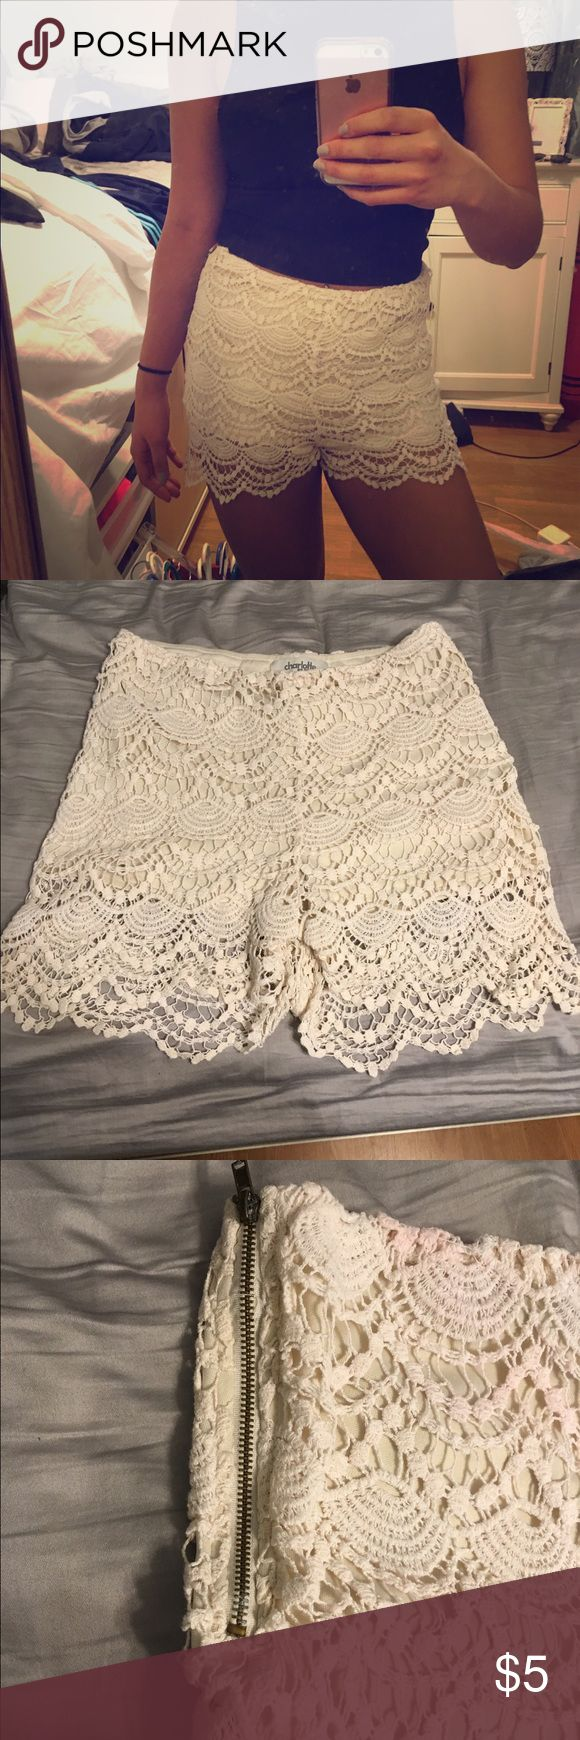 Charlotte Russe Cream Lace shorts Cute Cream Lace shorts from Charlotte Russe! Size medium but can fit size small. Has a some faint red staining at the top in the back. Zipper is on the side, sometimes slips down. Charlotte Russe Shorts